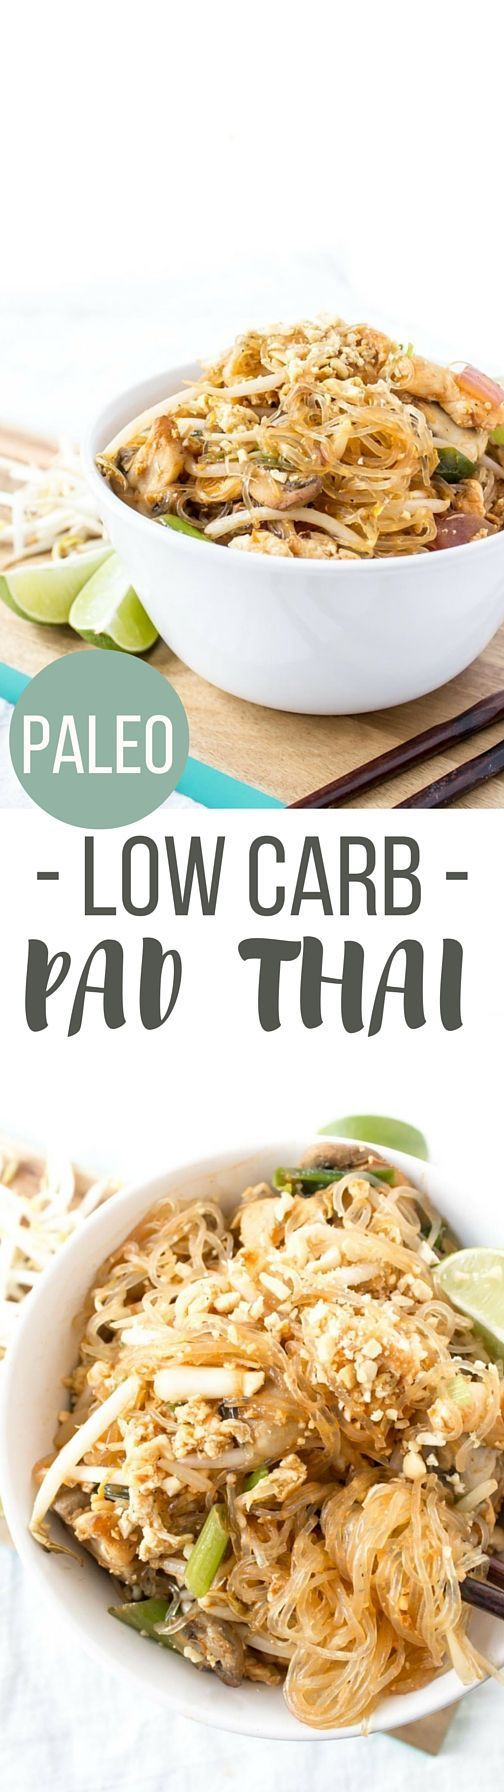 Low Carb Pad Thai! This delicious paleo meal tastes totally authentic and packs a nutritional punch!